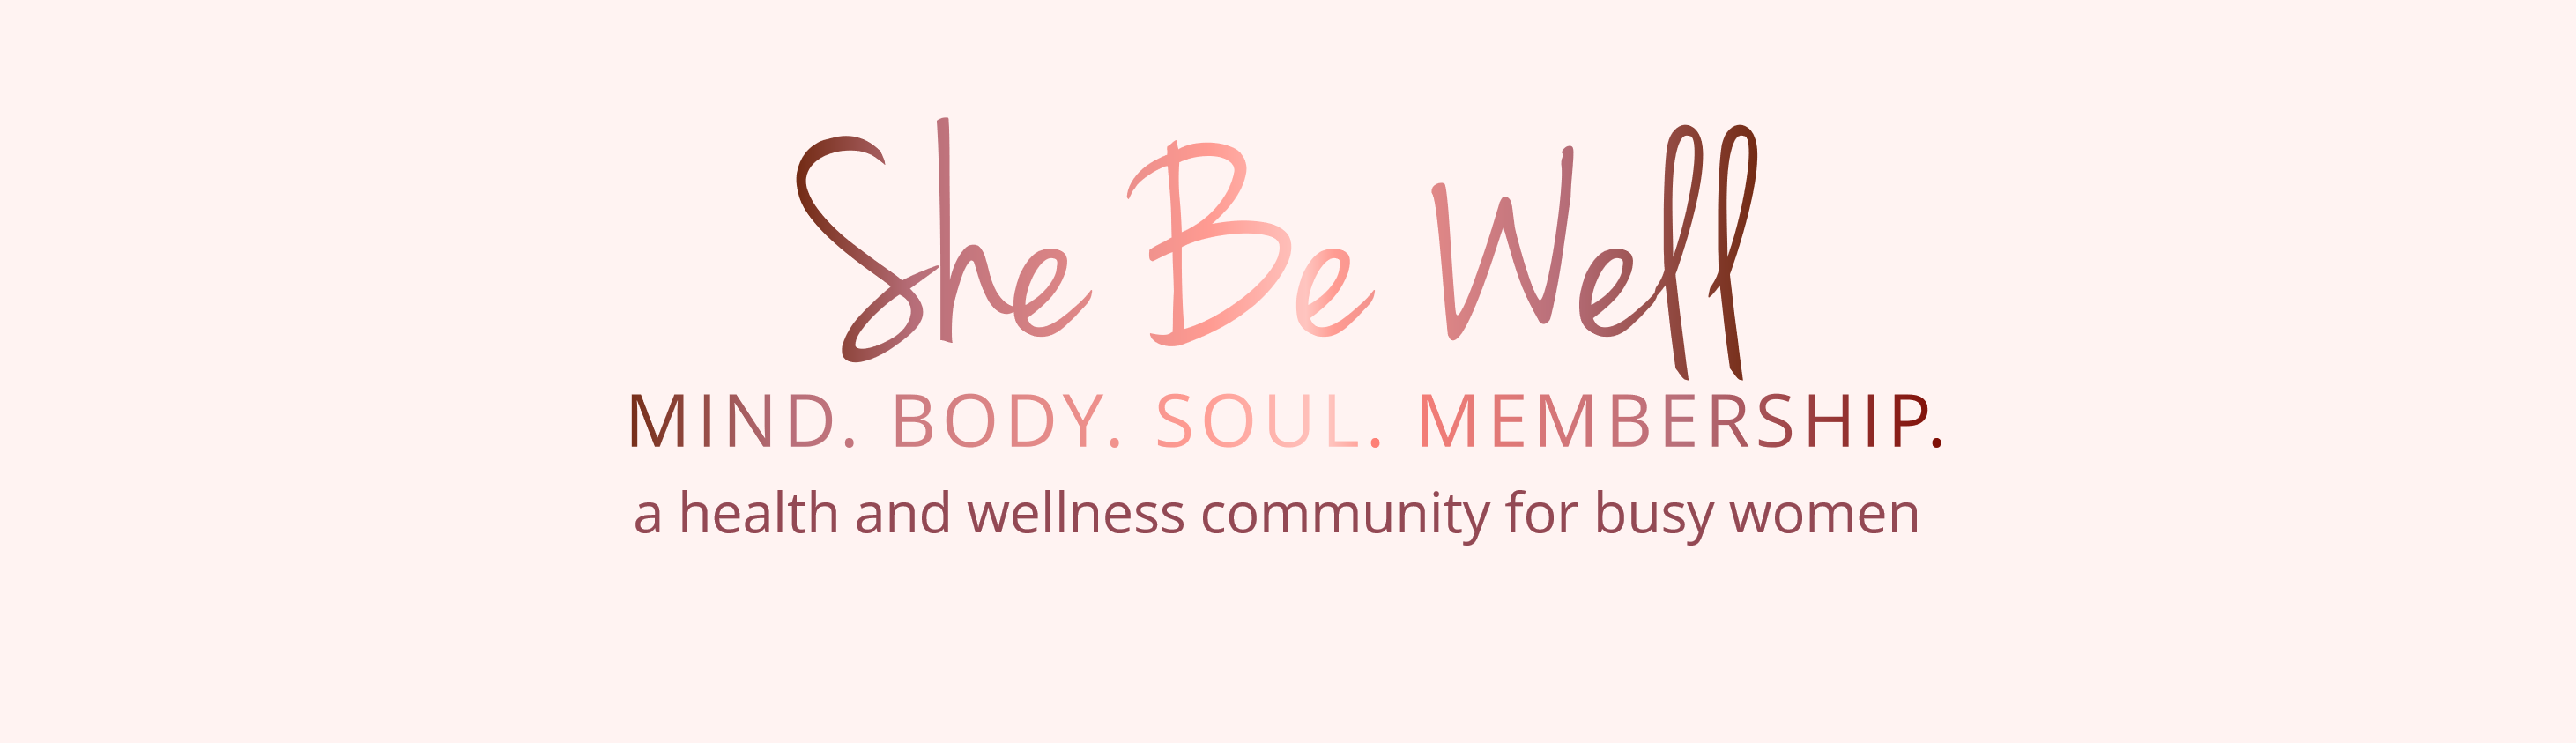 She Be Well Wellness Membership Logo